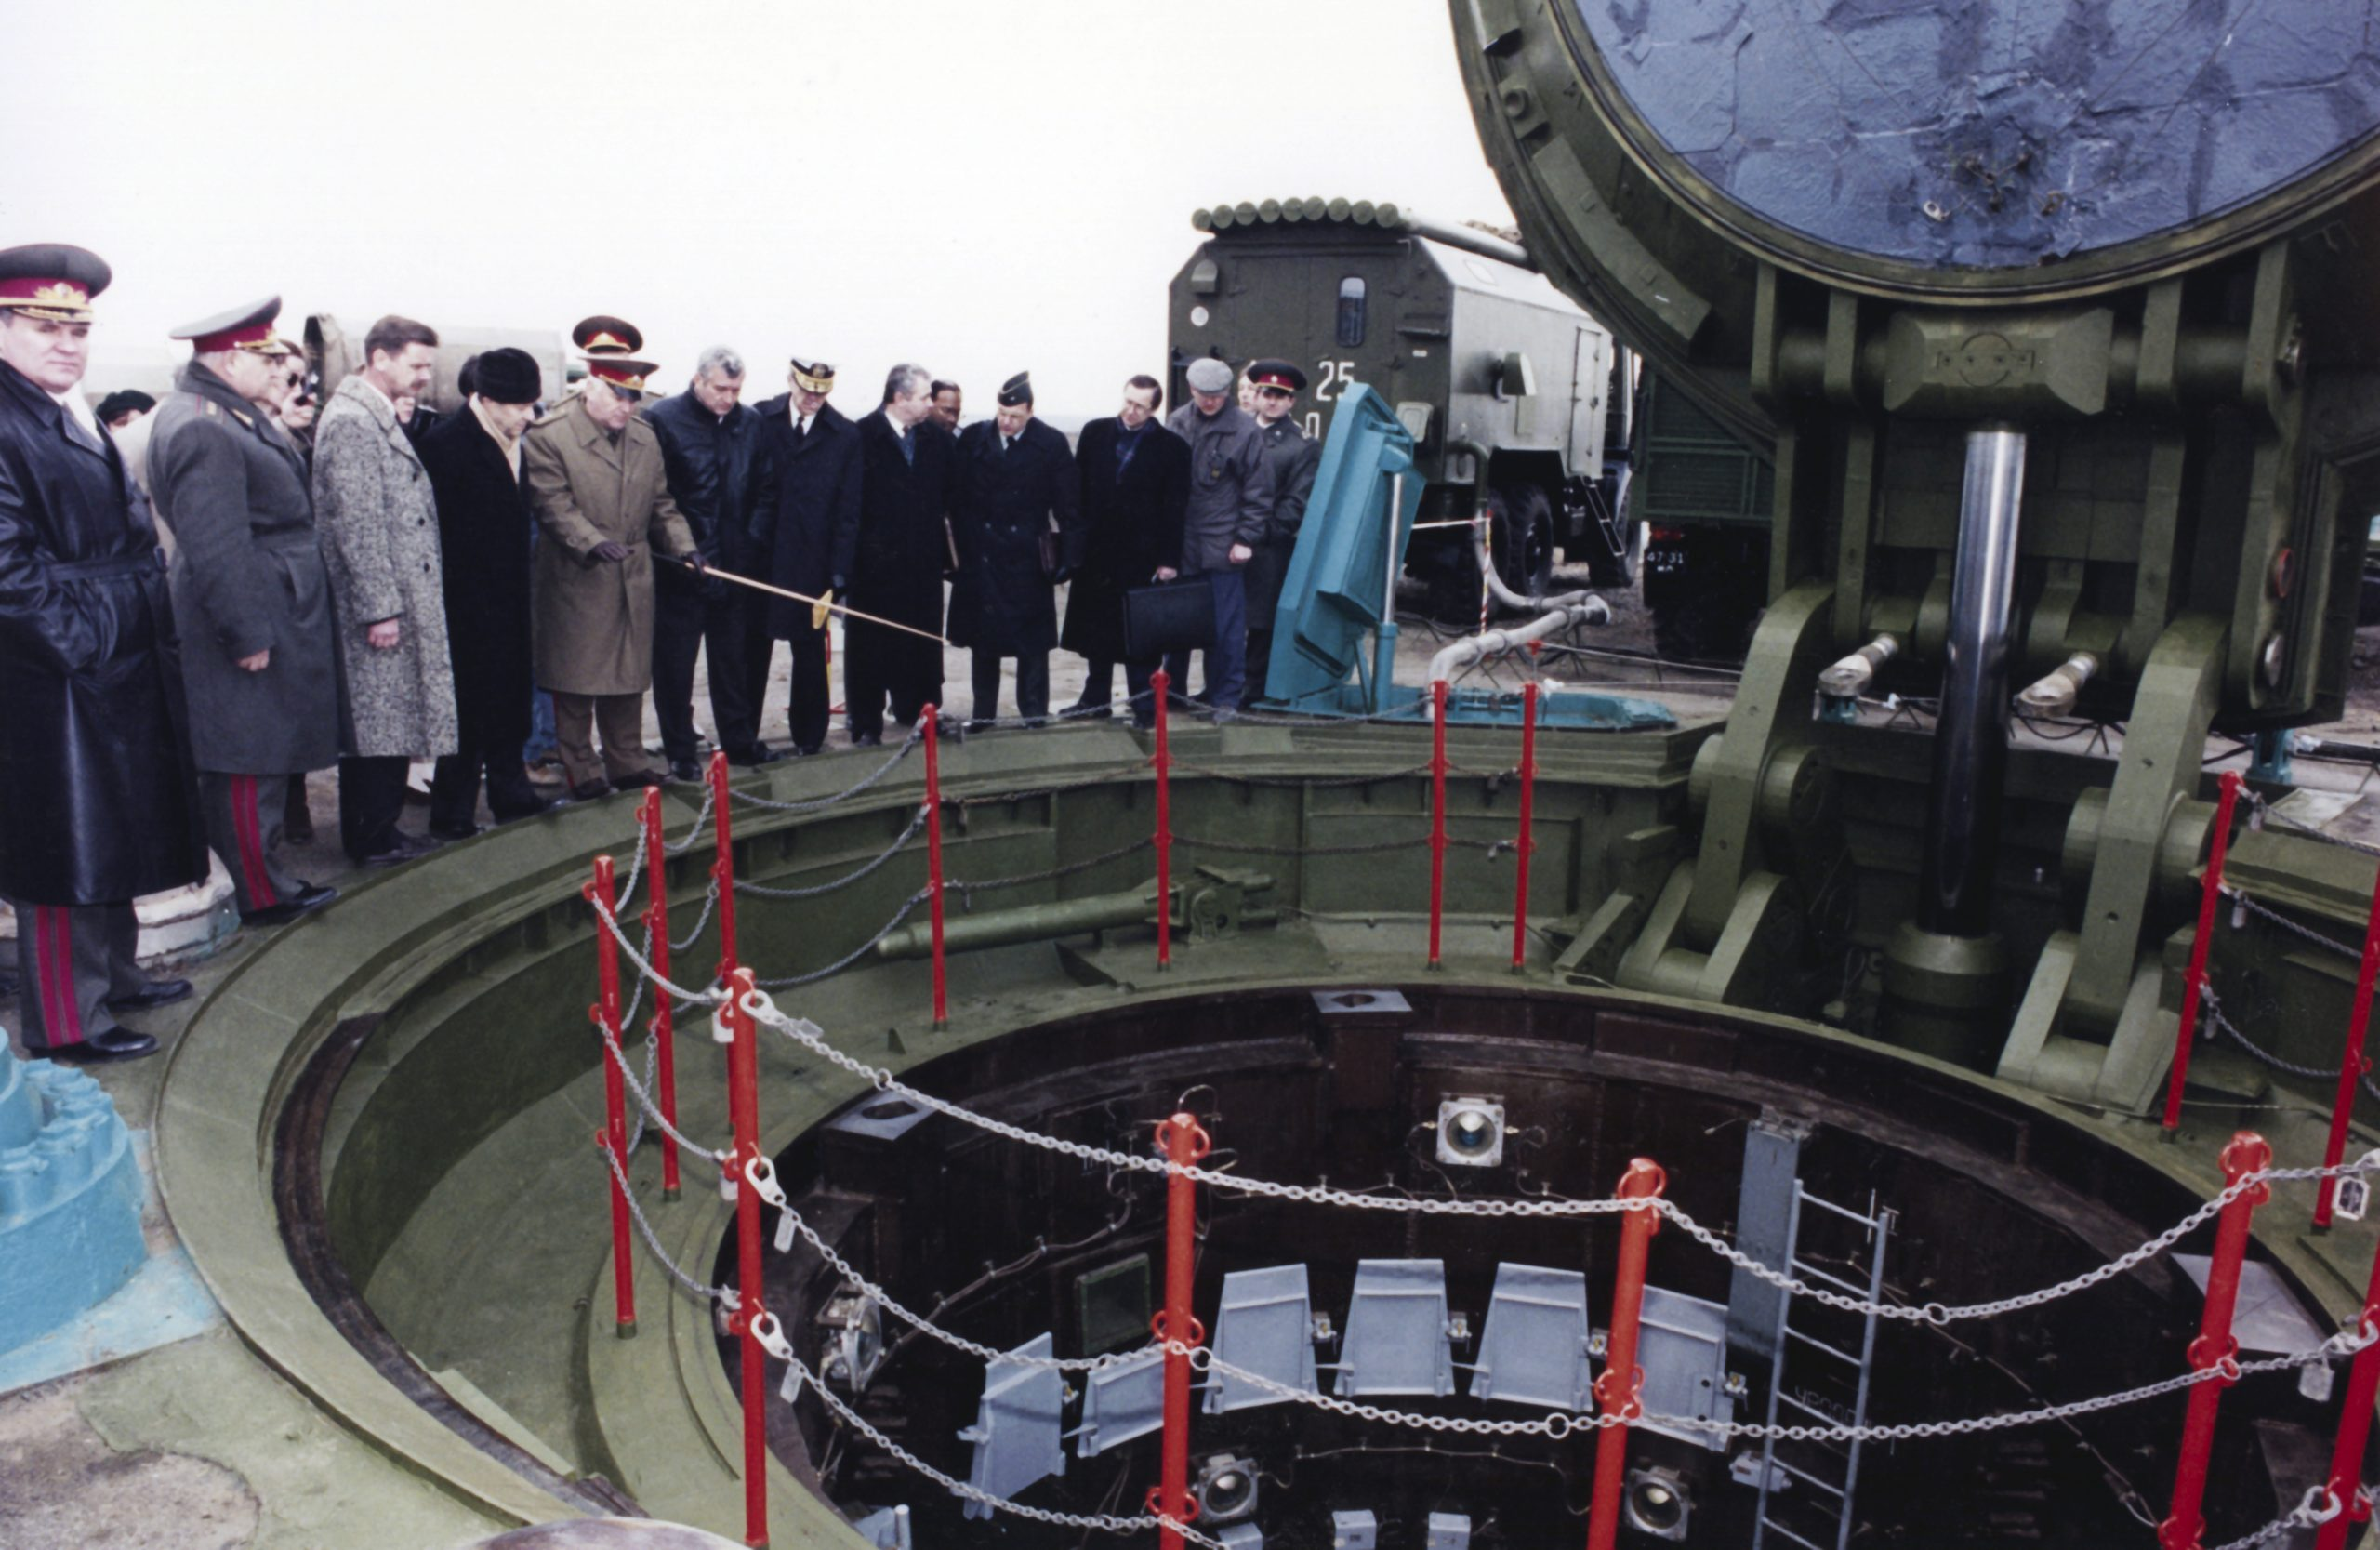 Perry (4th from left, black hat) staring into Soviet ICBM silo